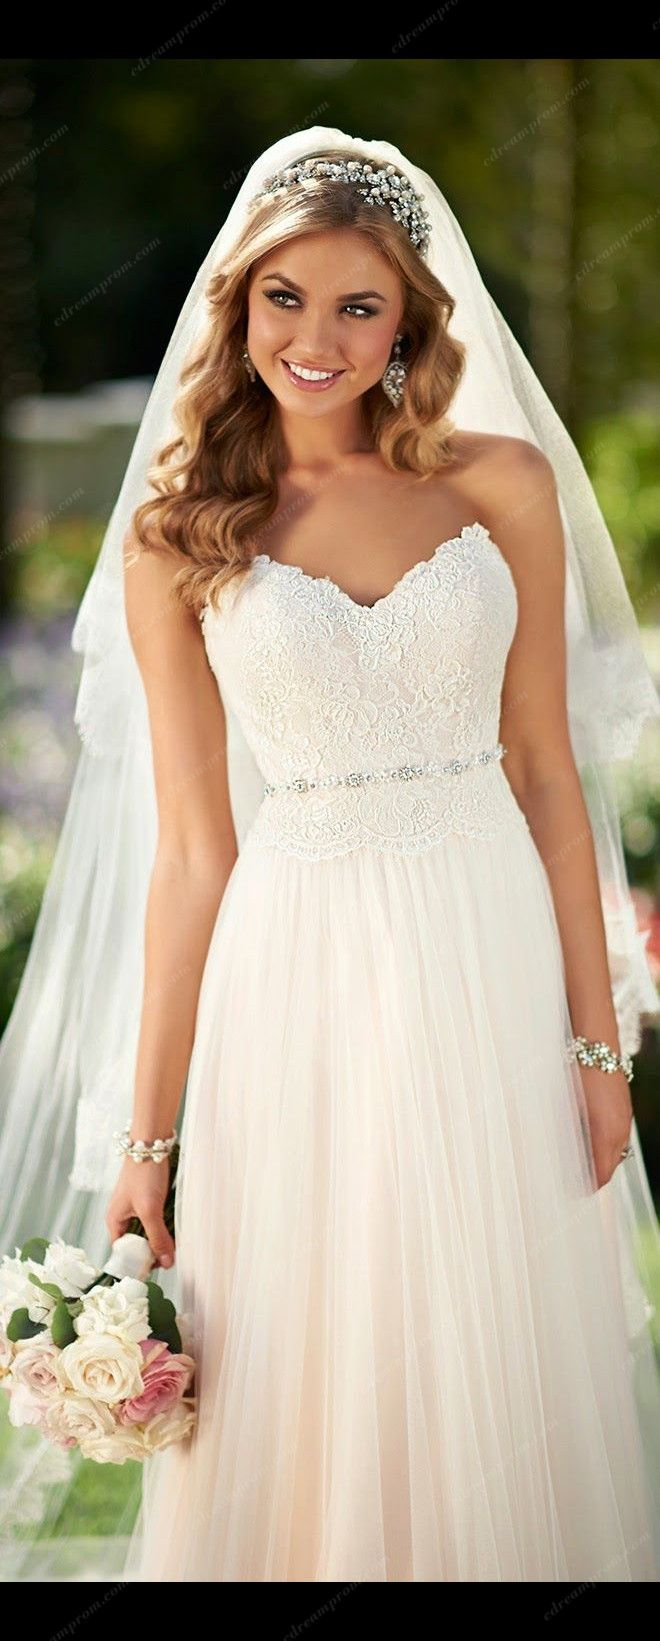 Beach wedding dresses made to perfection beautiful wedding and style